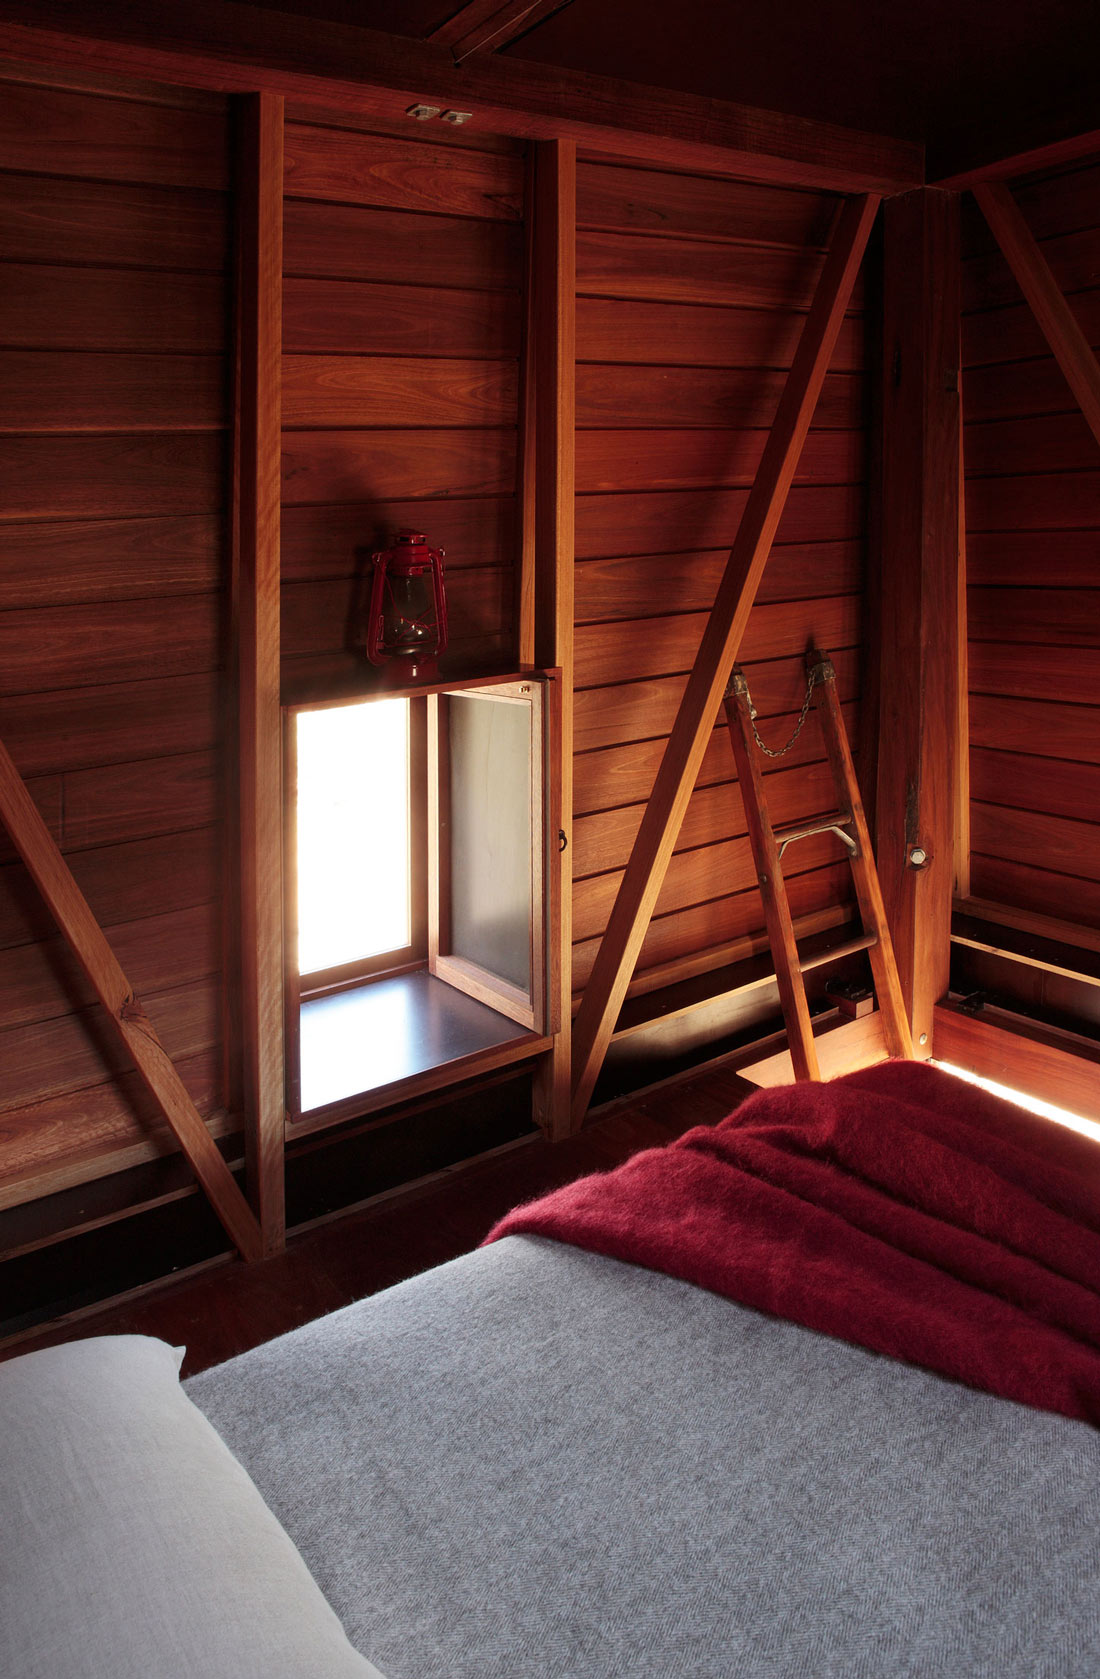 Bedroom, Mudgee Tower, New South Wales, Australia